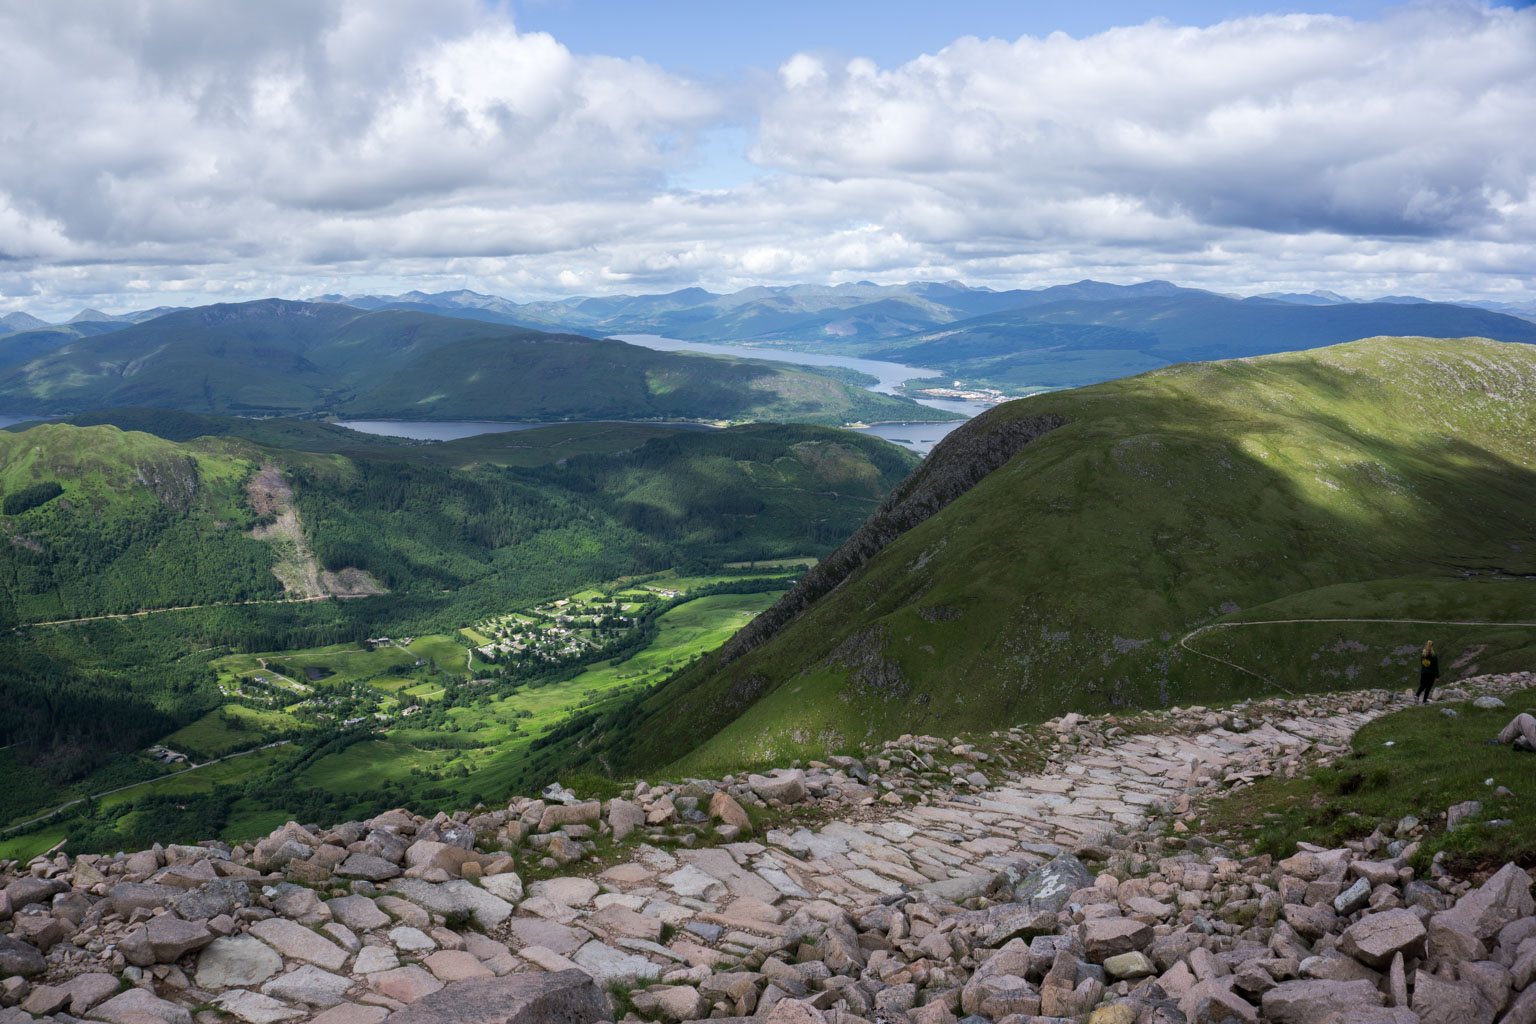 The Two Drifters Climbing Ben Nevis and admiring the incredible view of Scotland